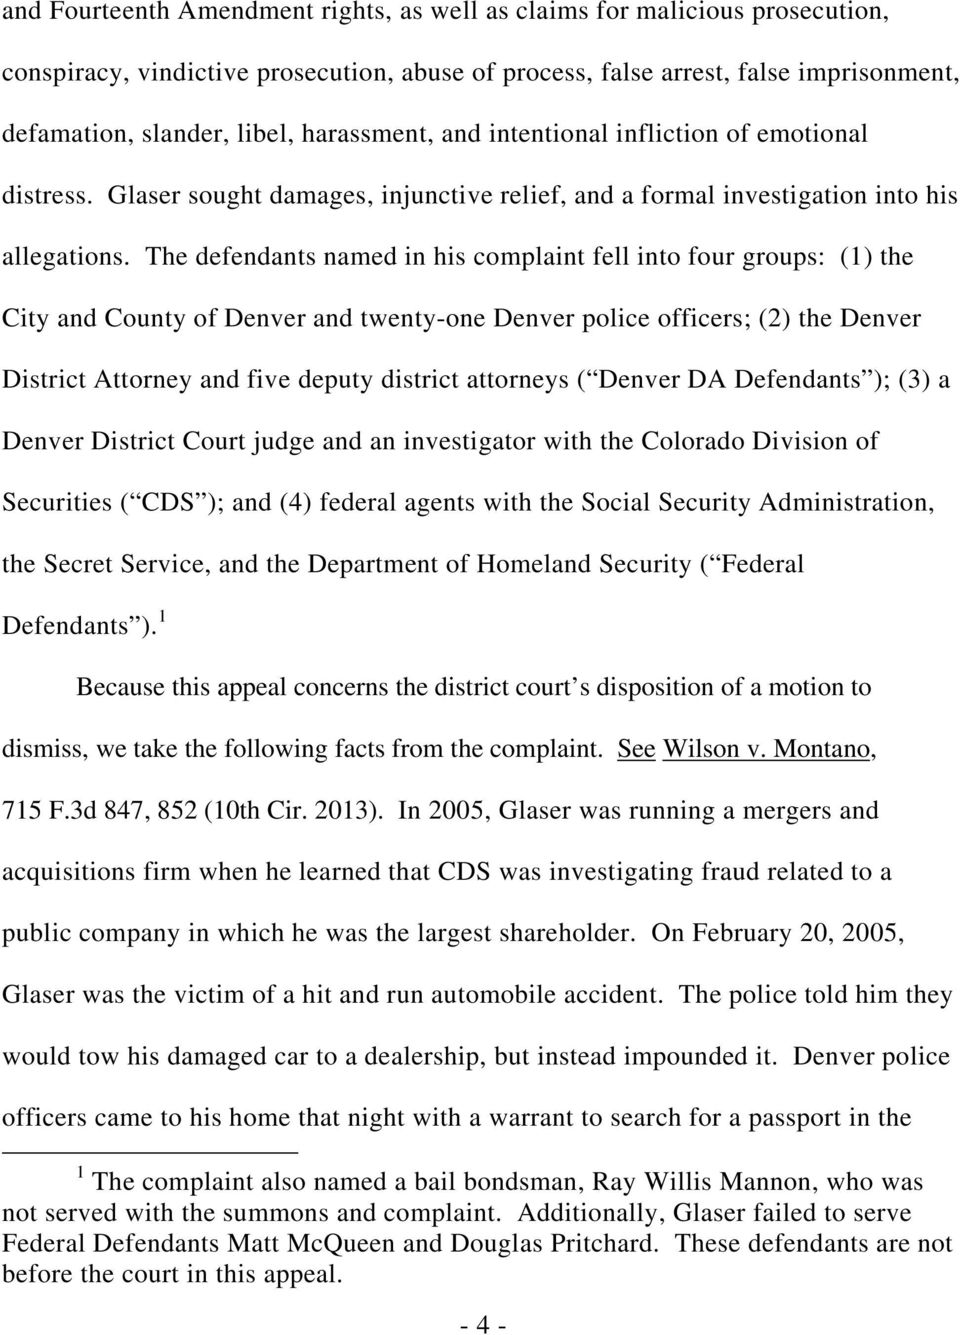 The defendants named in his complaint fell into four groups: (1) the City and County of Denver and twenty-one Denver police officers; (2) the Denver District Attorney and five deputy district